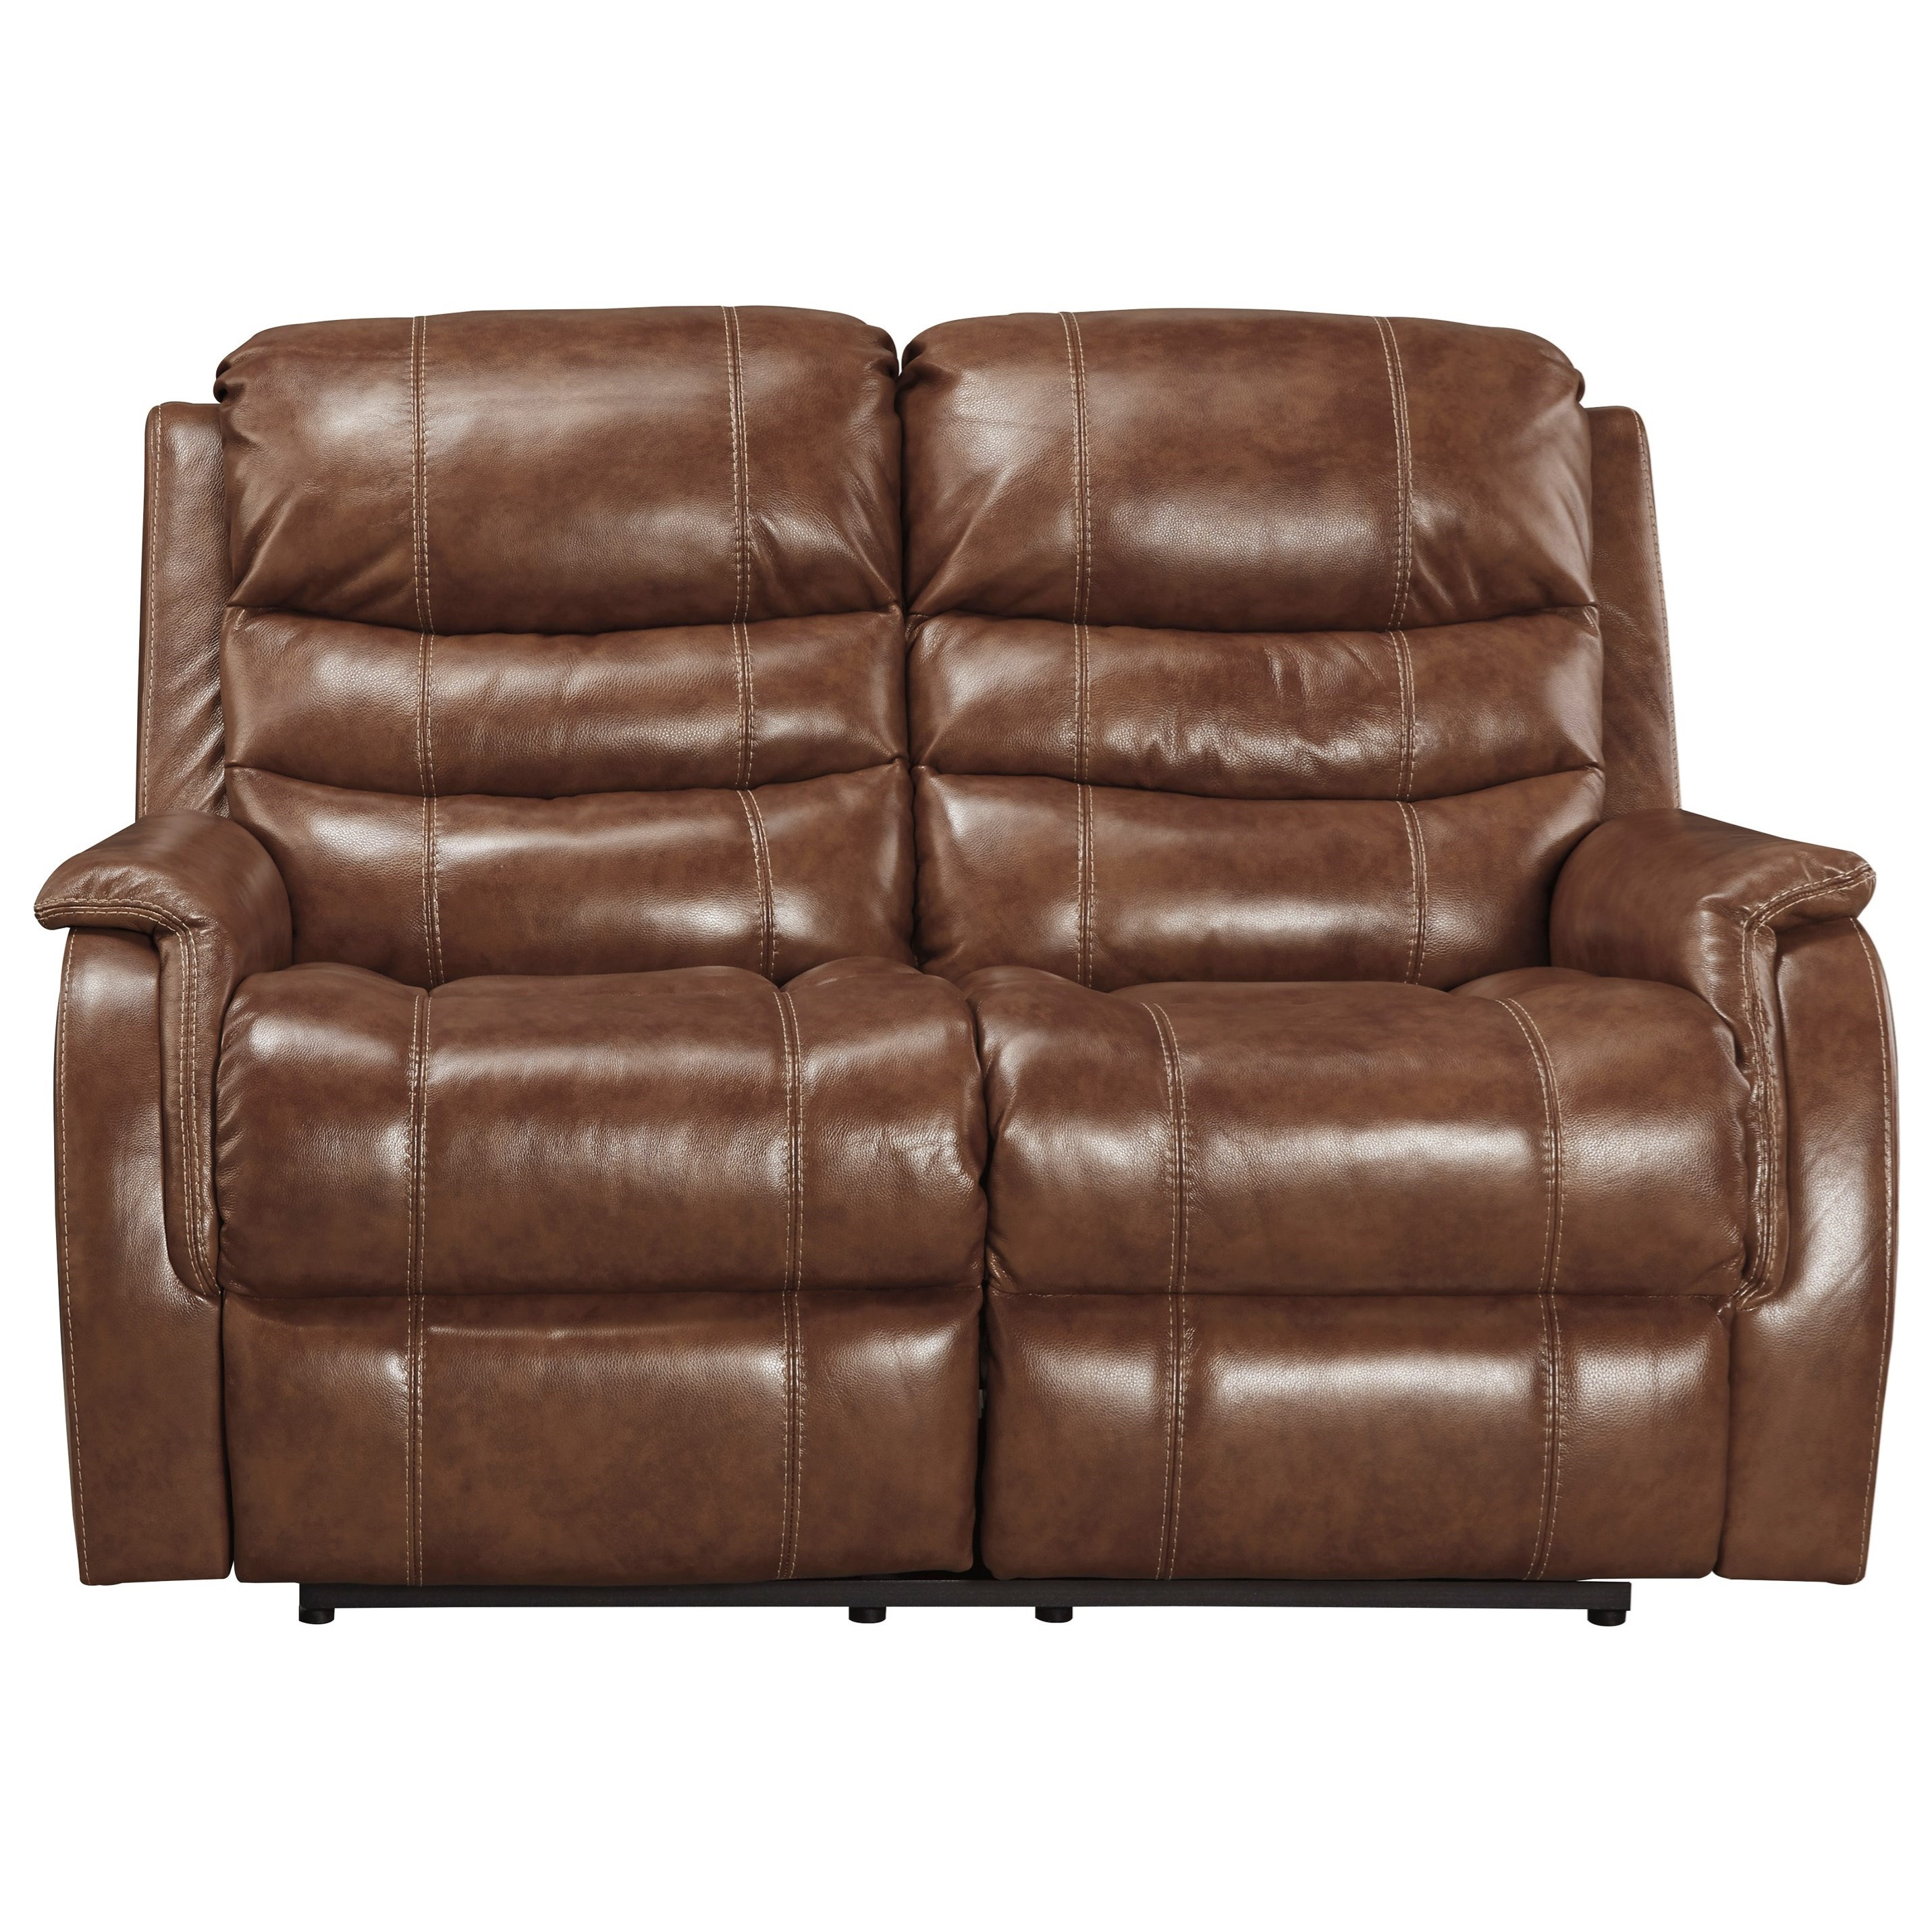 Signature design by ashley jillian leather match power Power reclining sofas and loveseats